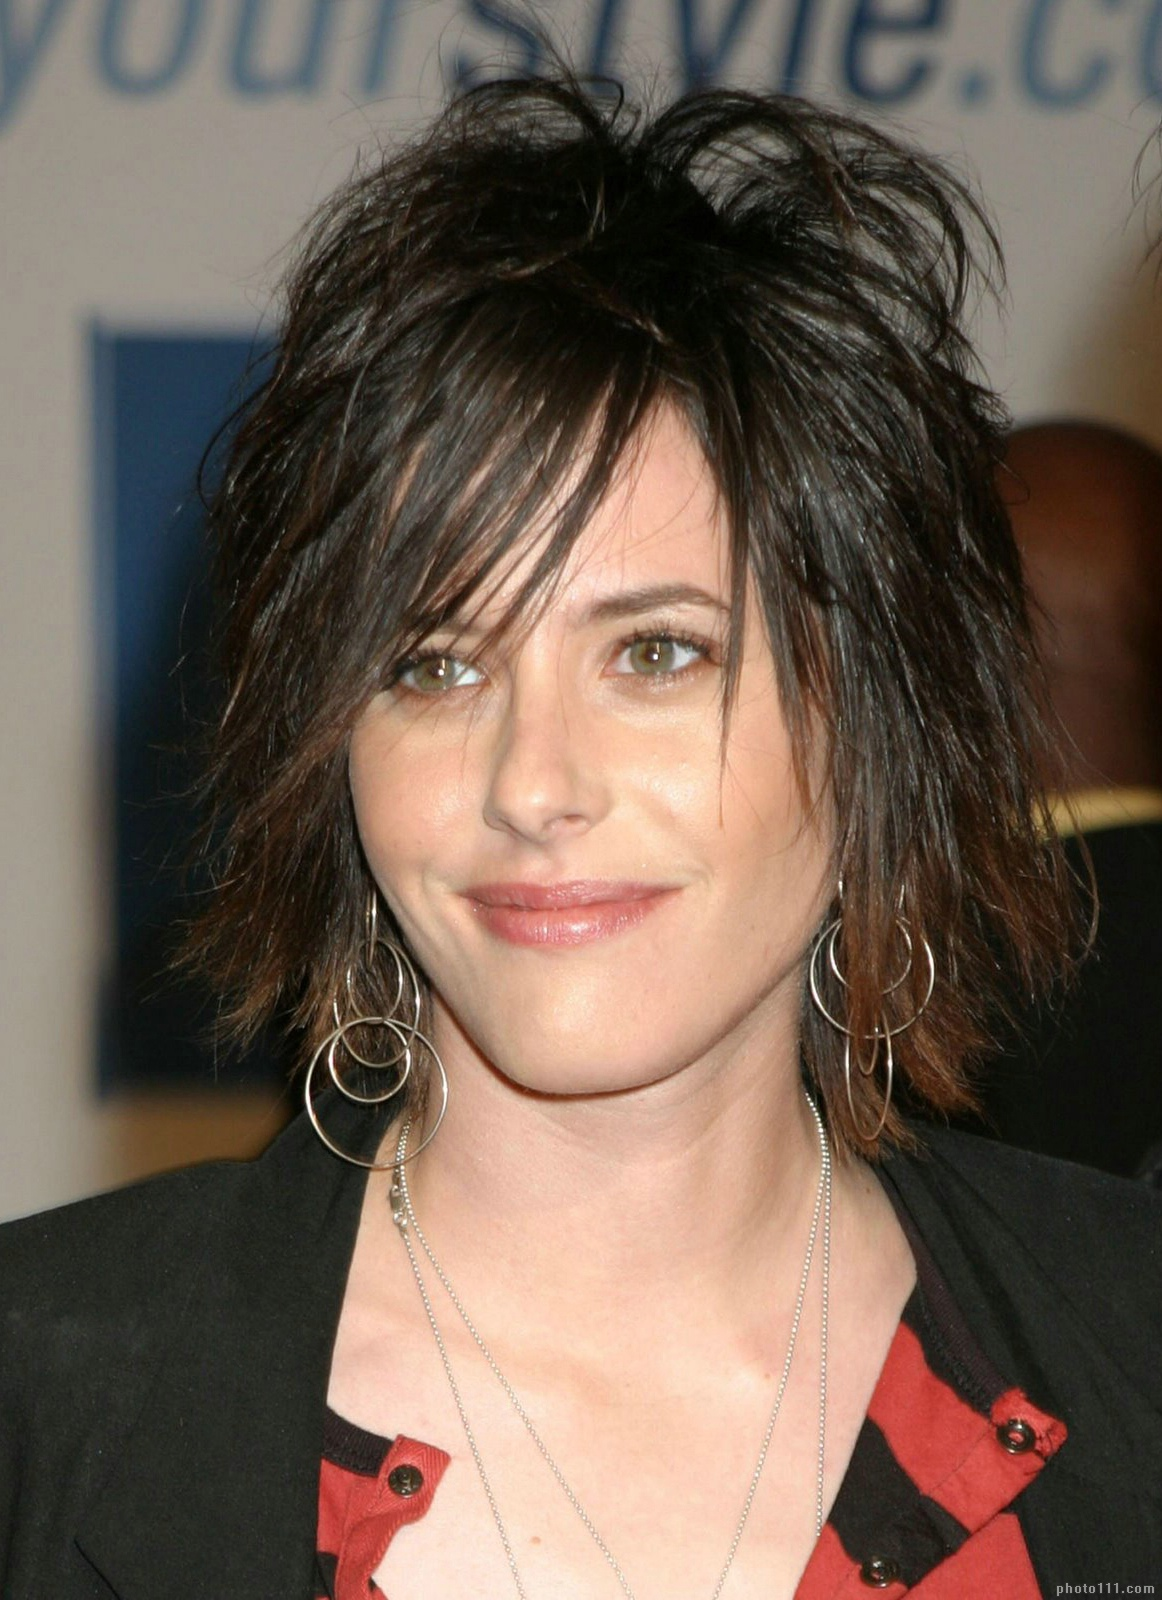 Katherine Moennig - Gallery Photo Colection